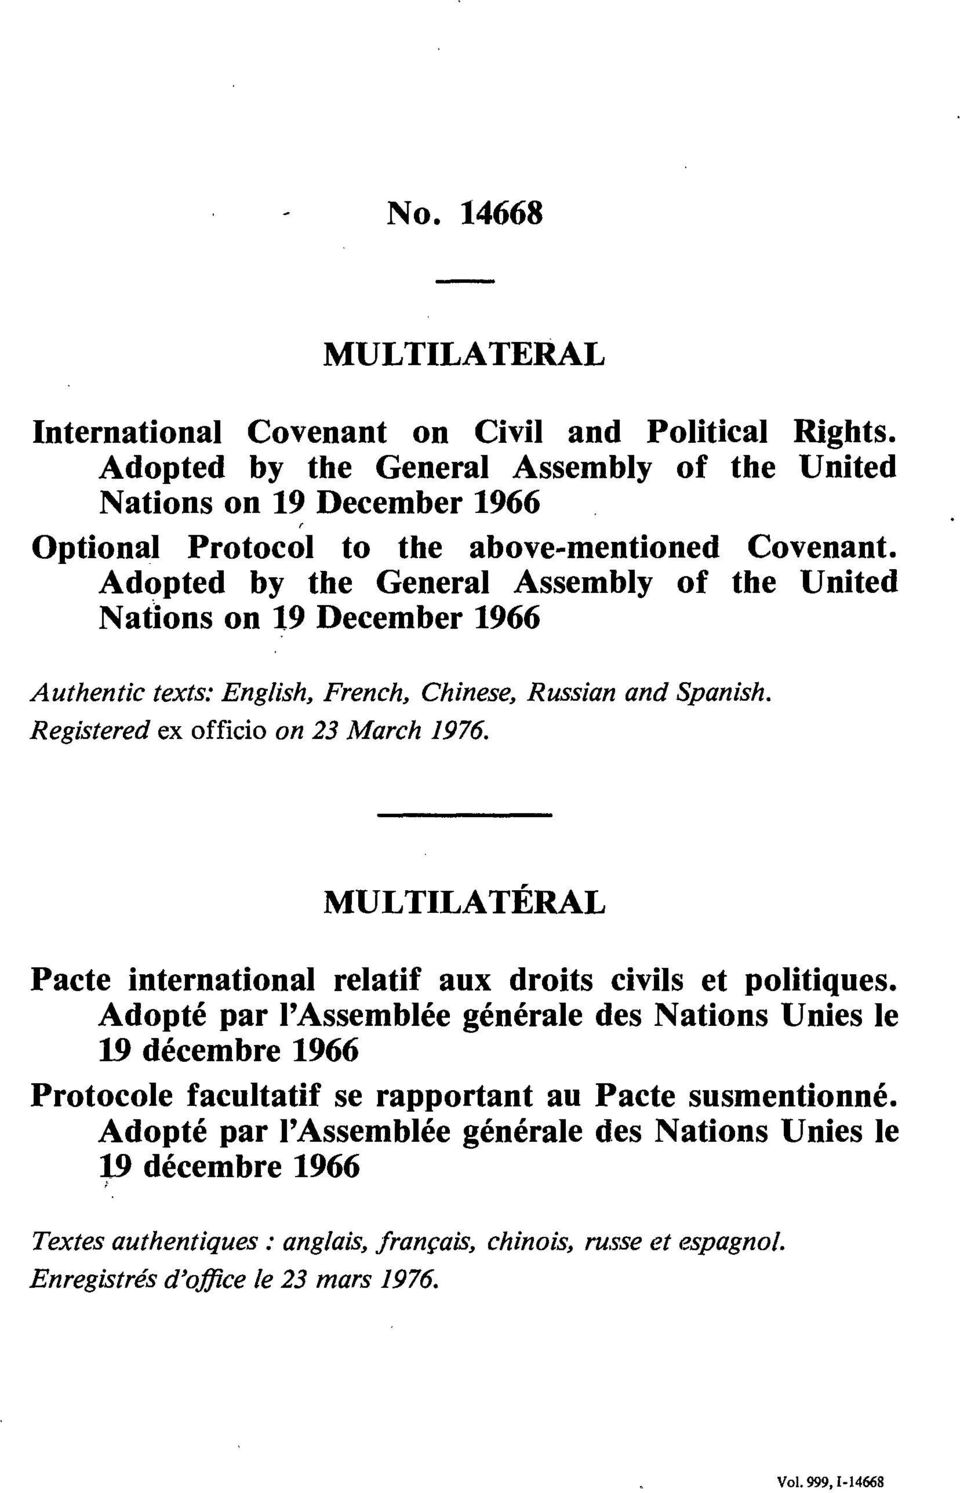 Adopted by the General Assembly of the United Nations on 19 December 1966 Authentic texts: English, French, Chinese, Russian and Spanish. Registered ex officio on 23 March 1976.